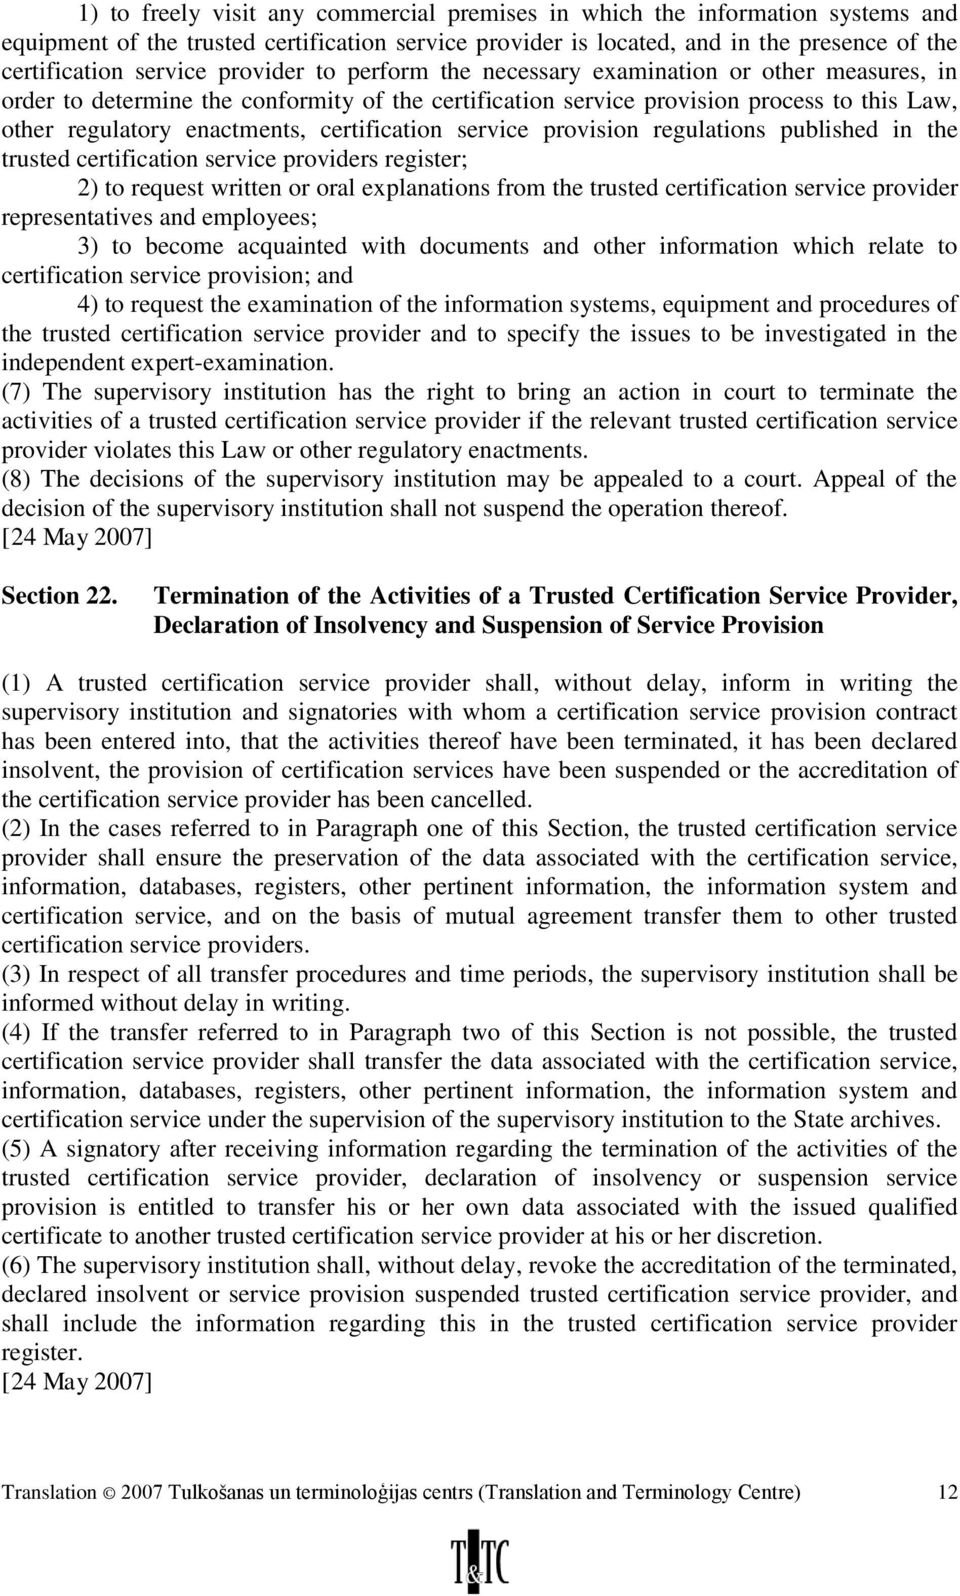 certification service provision regulations published in the trusted certification service providers register; 2) to request written or oral explanations from the trusted certification service